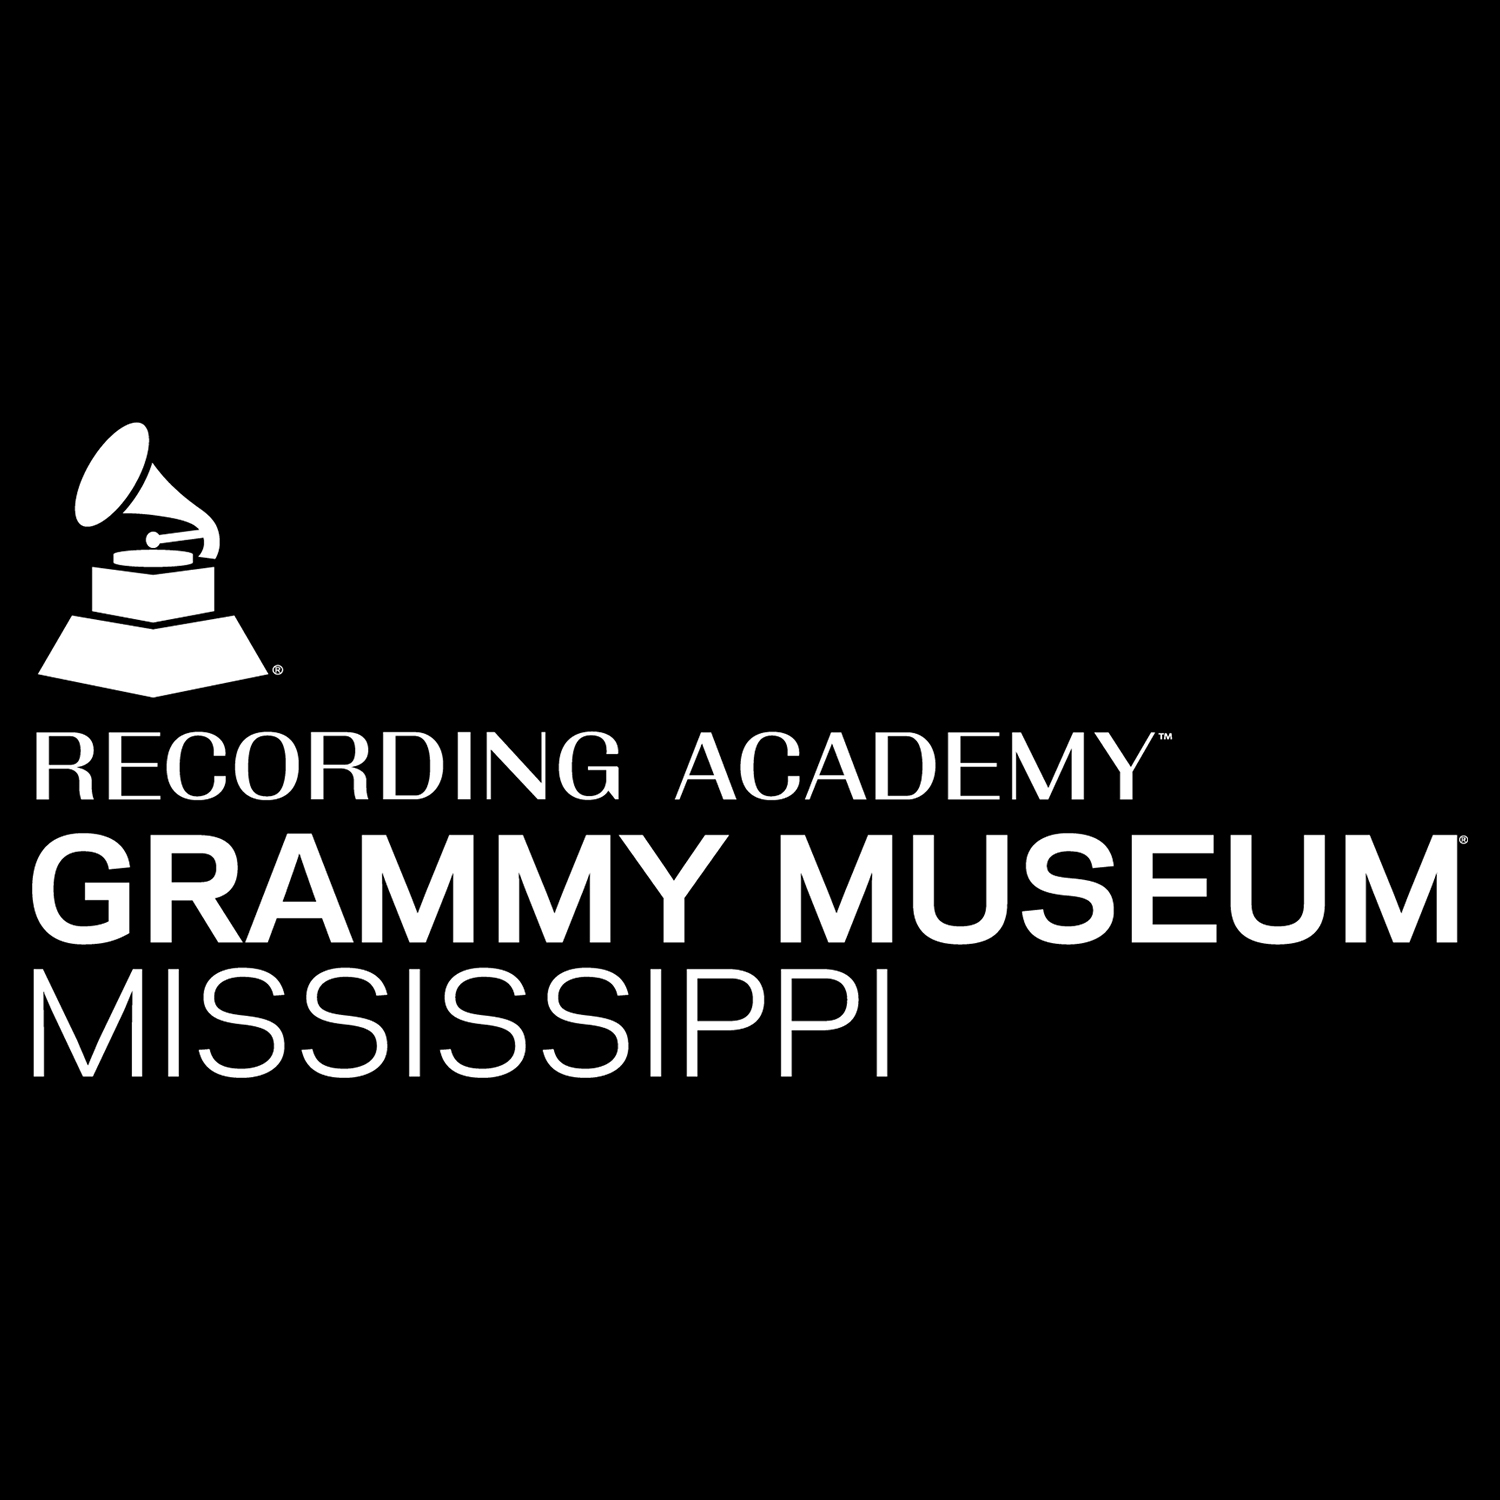 Visit the Mississippi Grammy Museum.